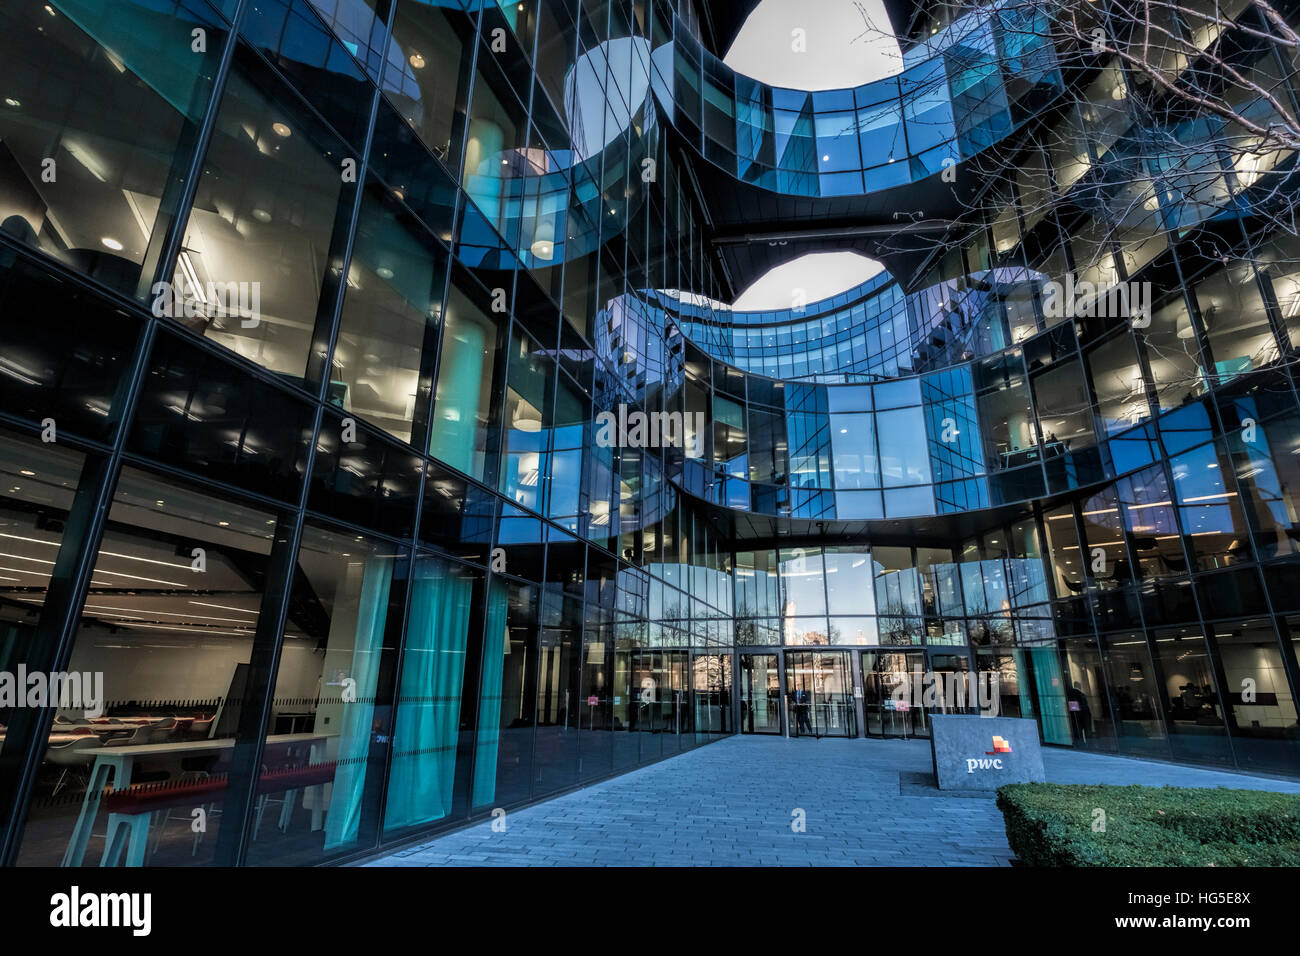 Price Waterhouse Coopers (PWC) offices, 7 More London, Southwark, London UK - Stock Image